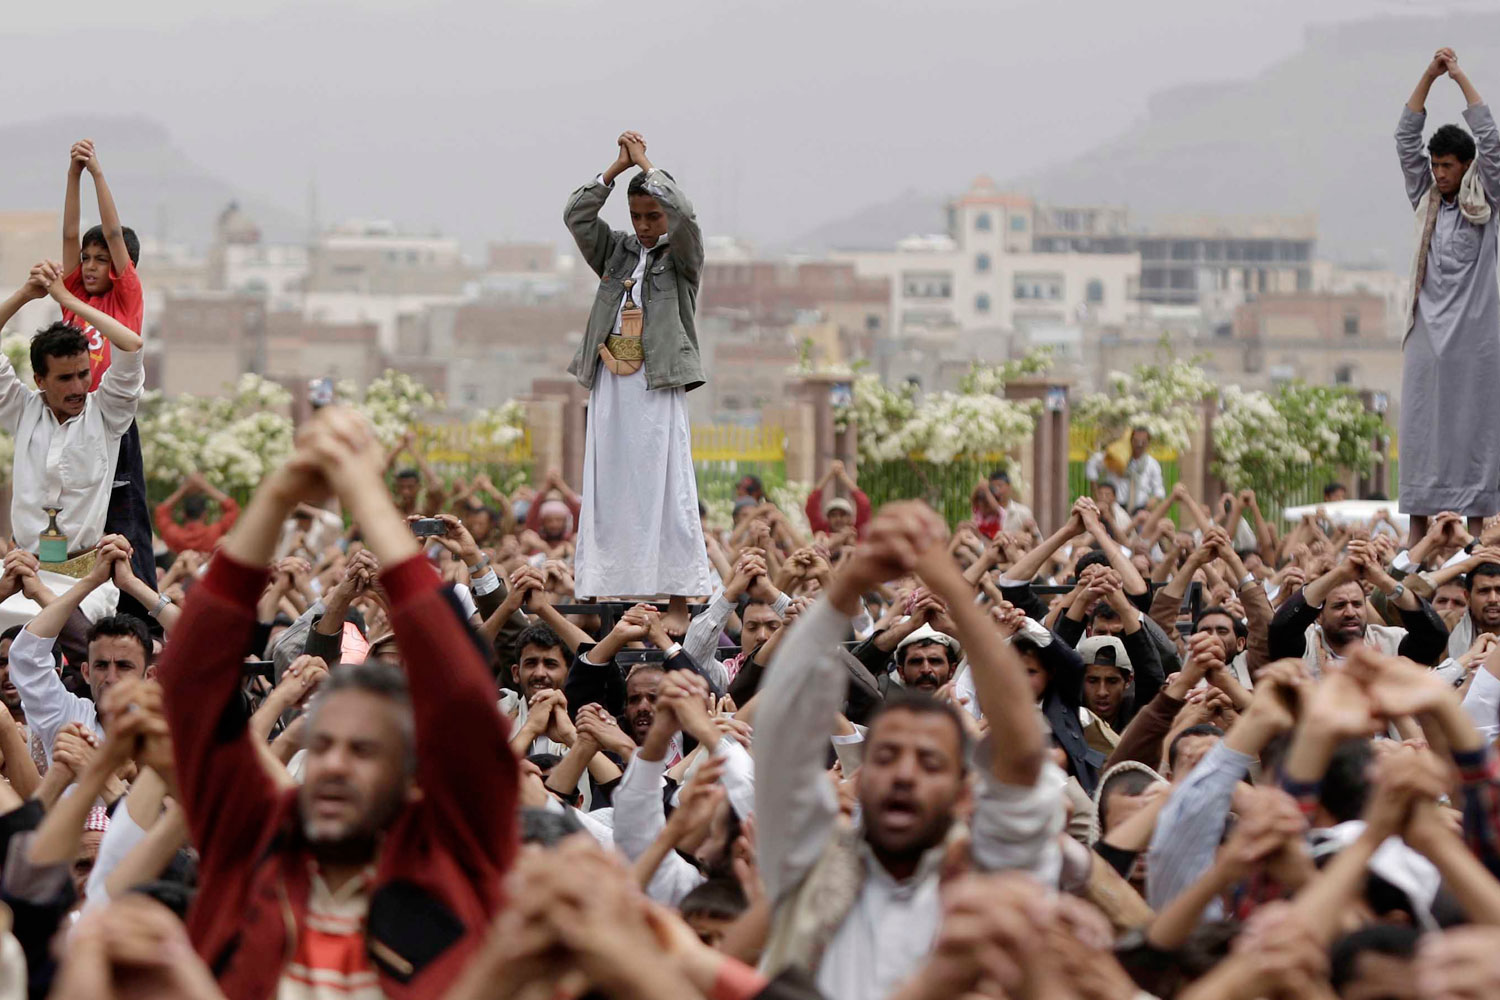 July 1, 2011. Anti-government protestors gesture during a demonstration demanding the resignation of Yemeni President Ali Abdullah Saleh, in Sanaa, Yemen. Military officials say dozens of Yemeni officers suspected of turning against embattled President Ali Abdullah Saleh have been arrested under orders from his son.